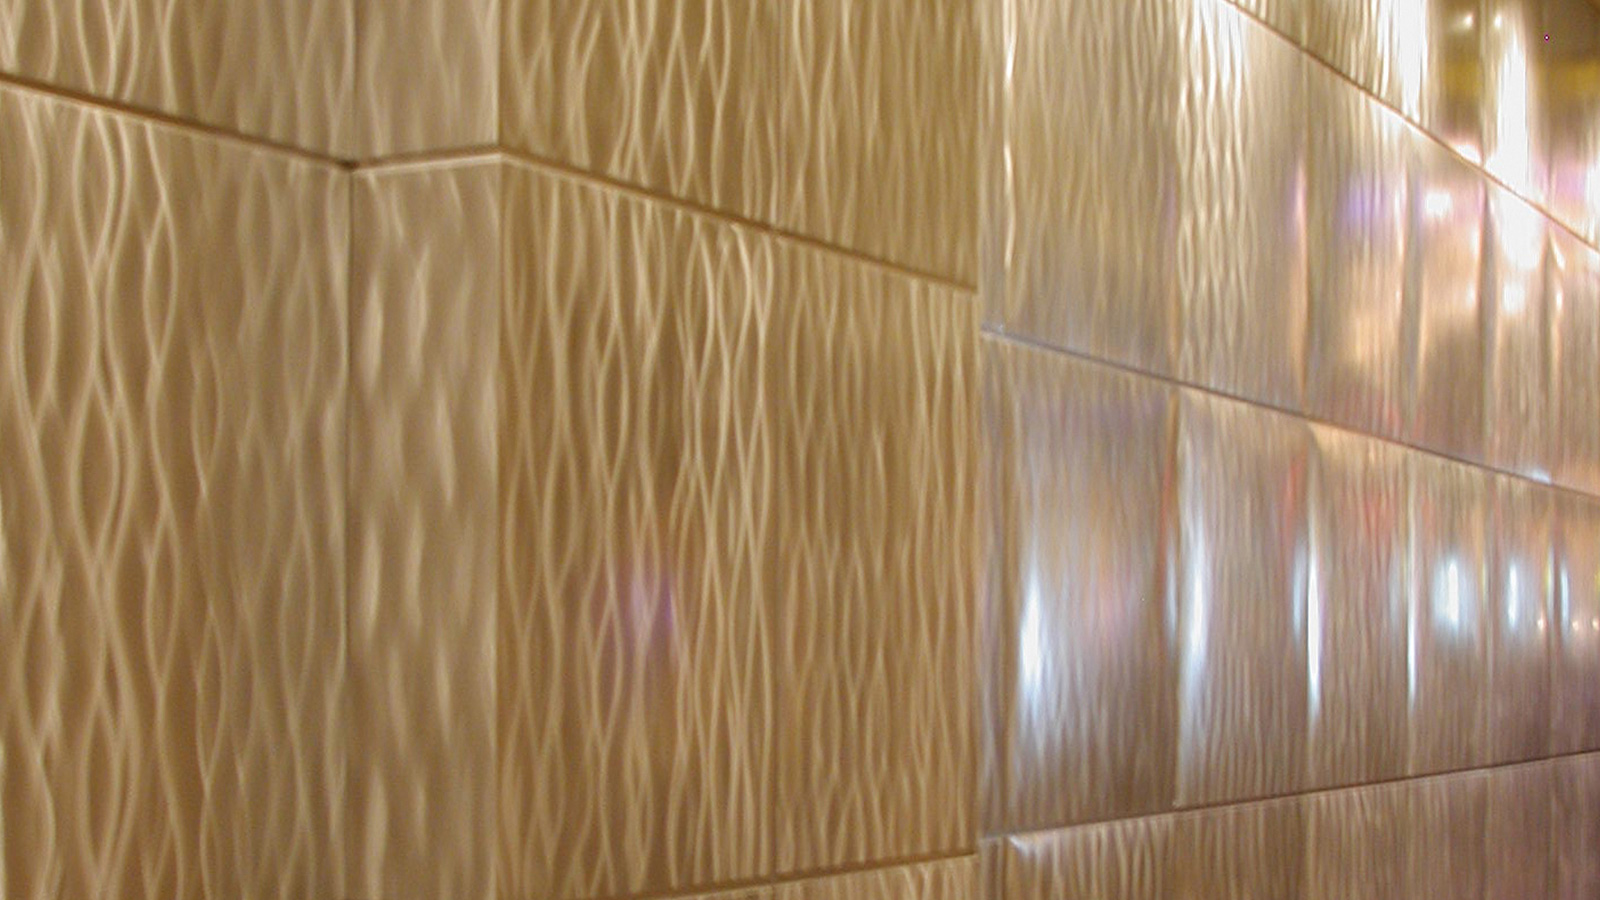 Moz Designer Metals, Keyway Wall Panels, Interior Design, Architecture